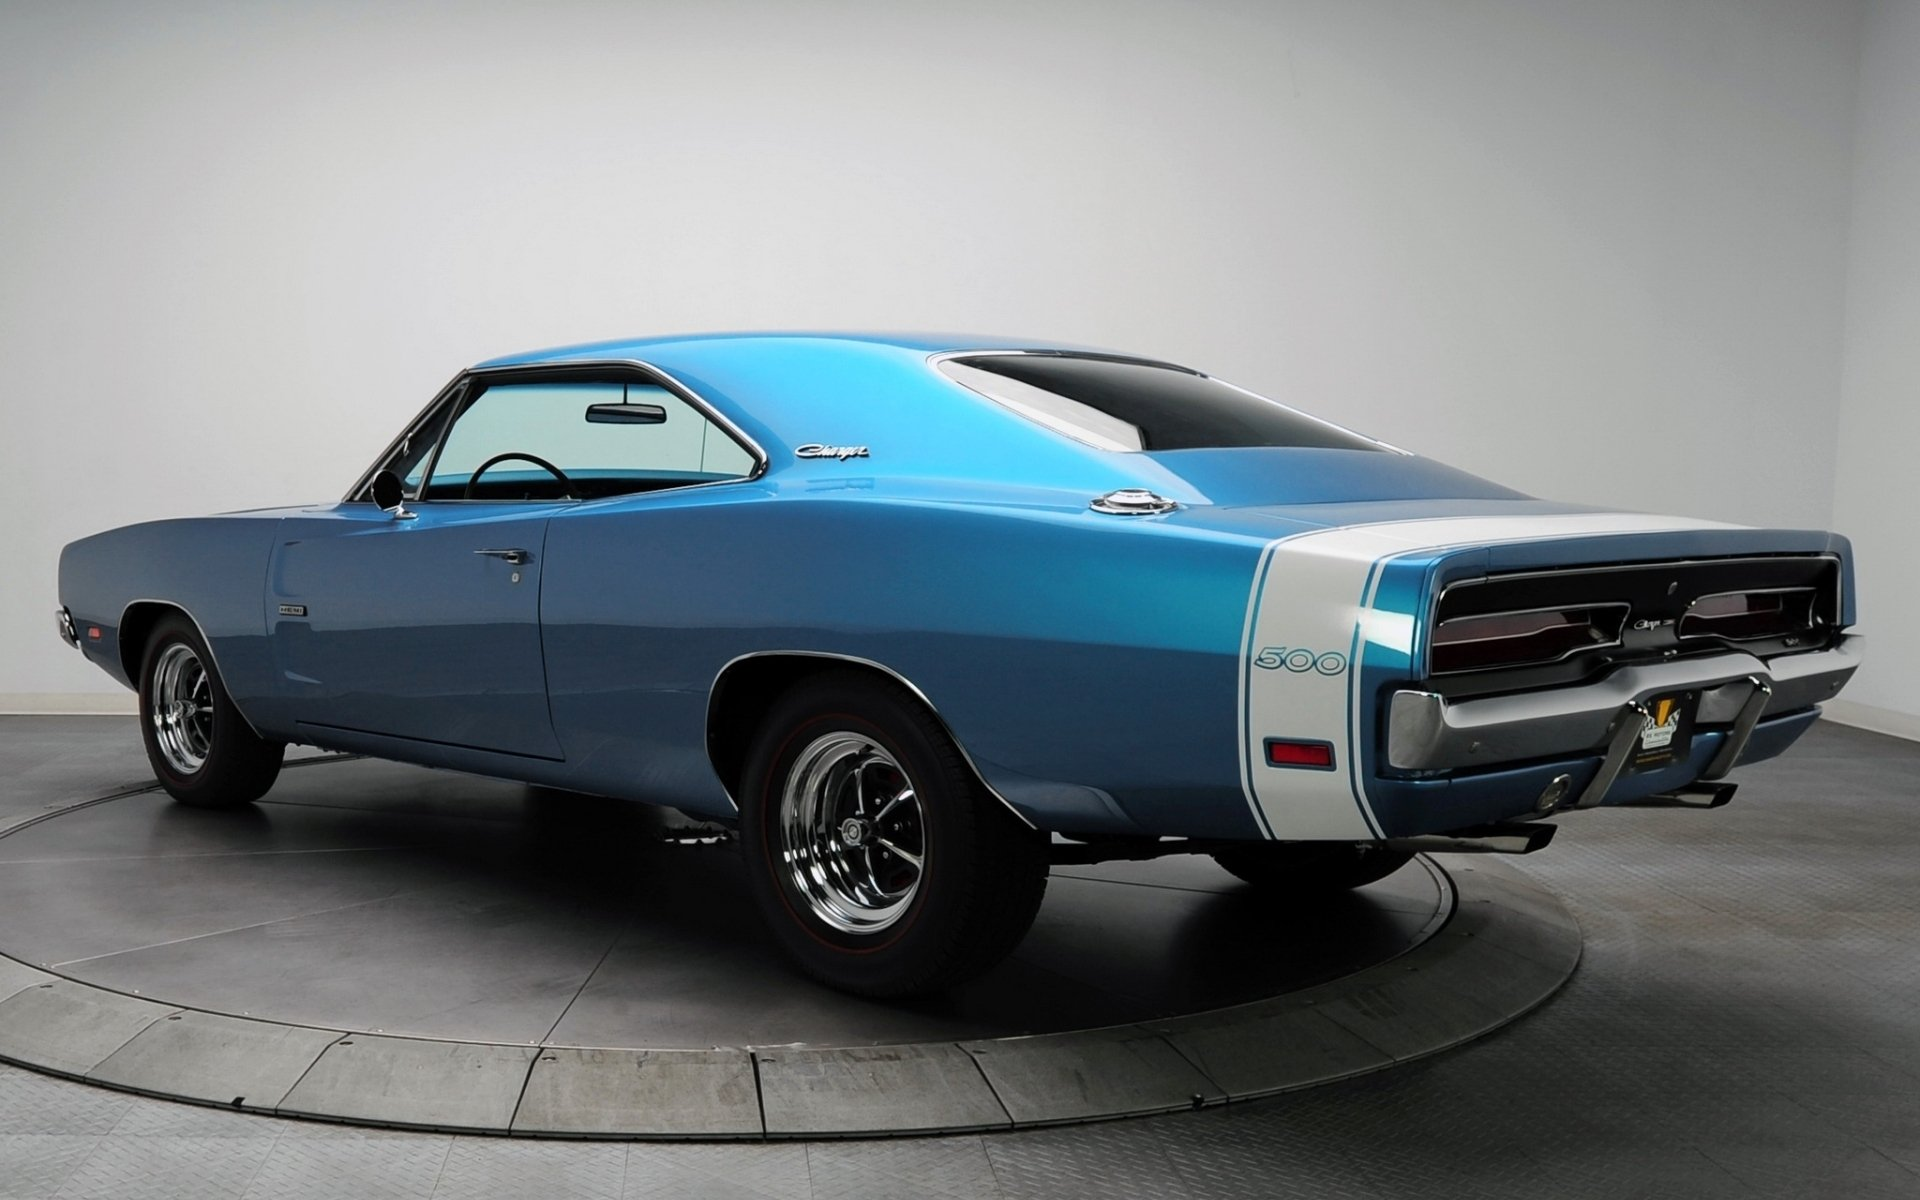 113 Dodge Charger Hd Wallpapers Background Images Wallpaper Abyss